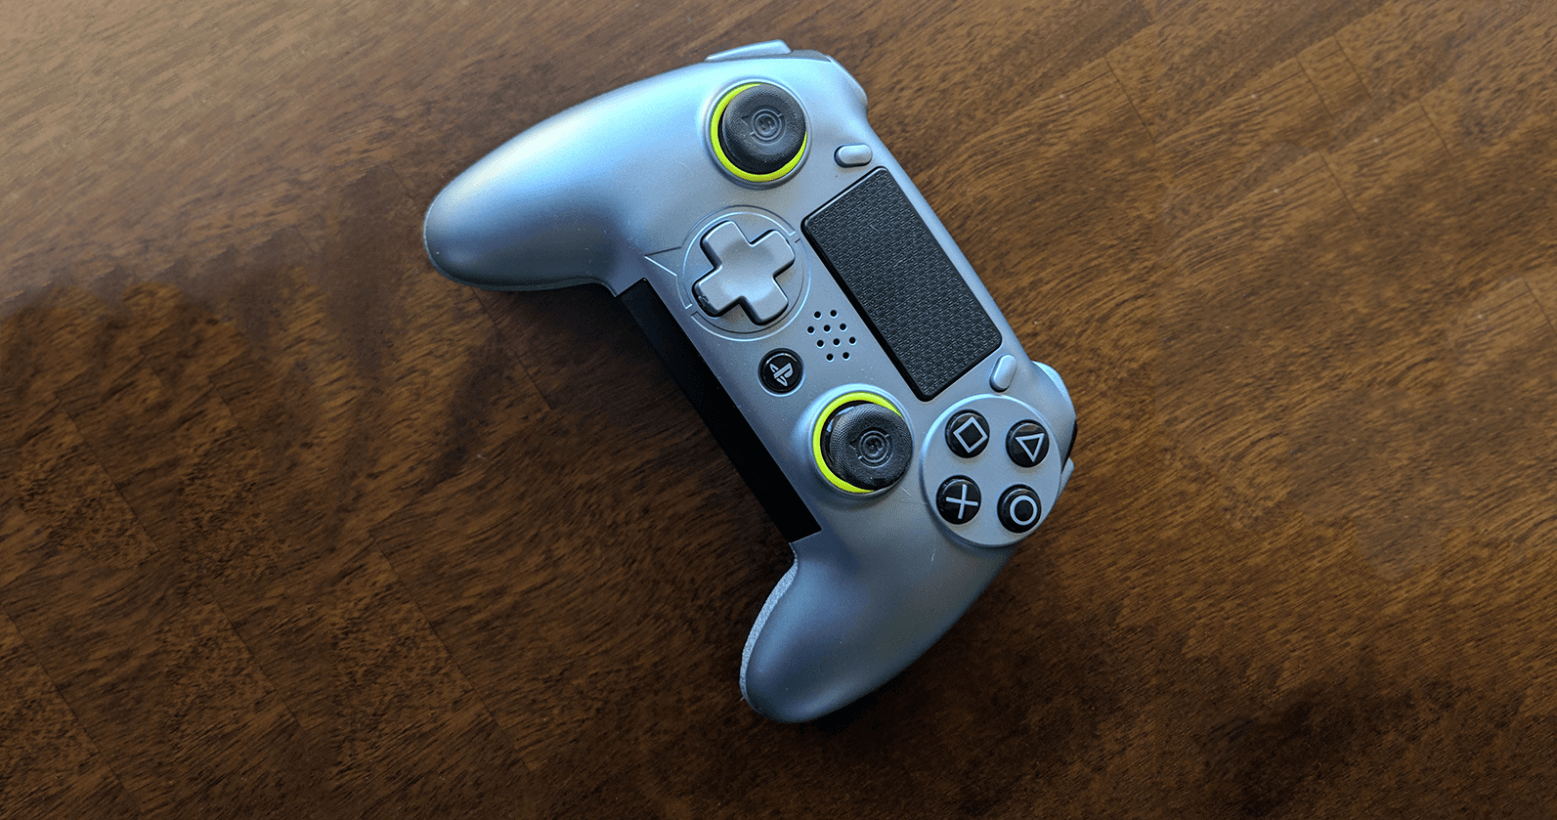 SCUF's Vantage PS4 controller: Shades of amazing, with just a touch